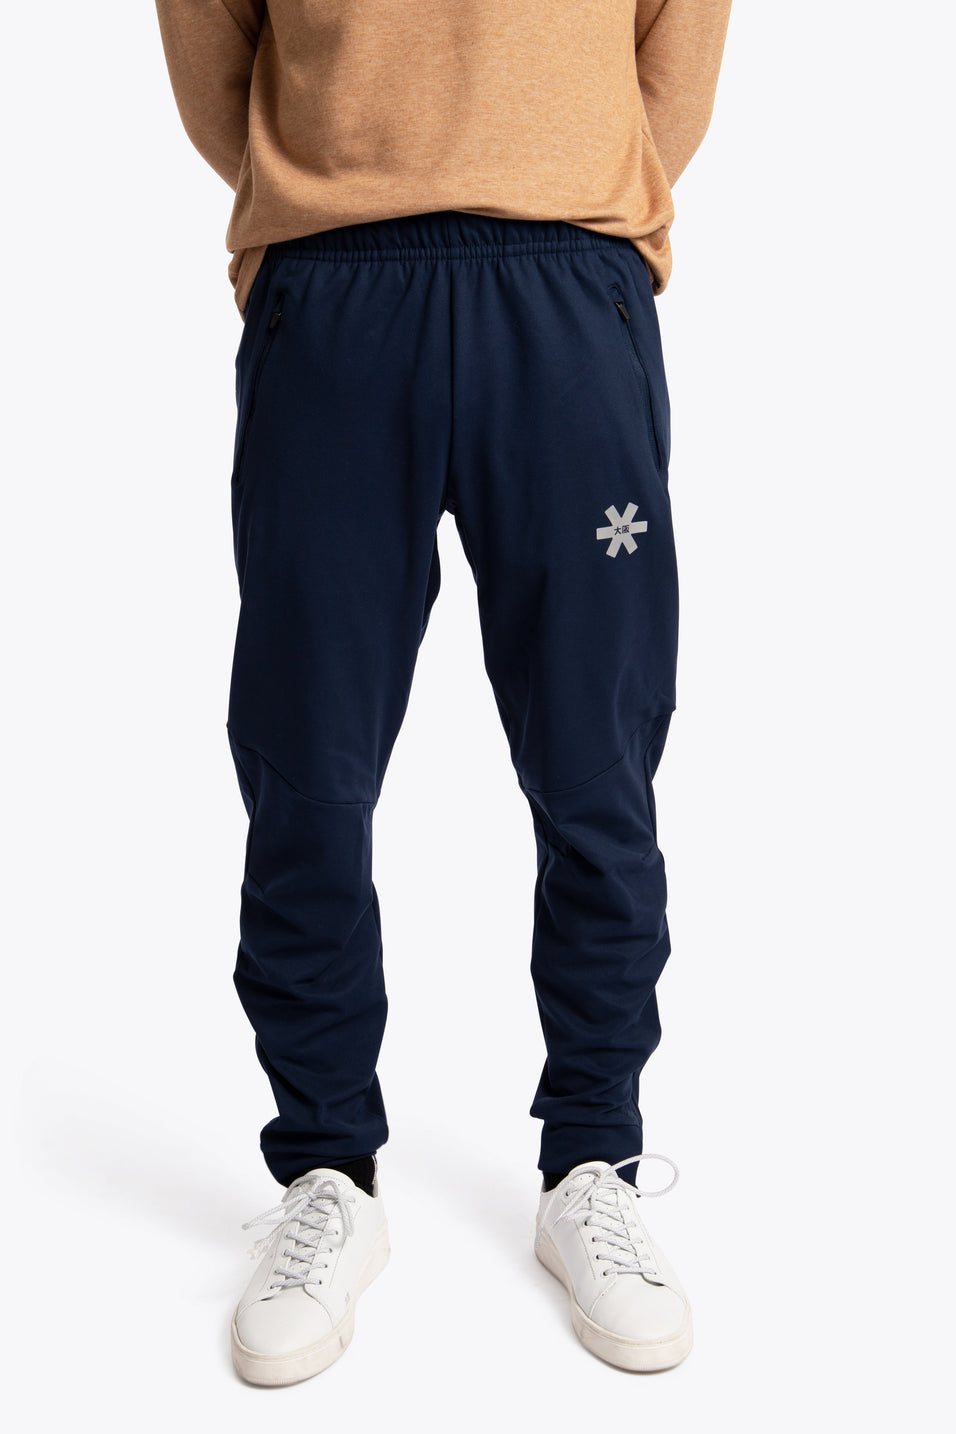 Osaka men track pants navy